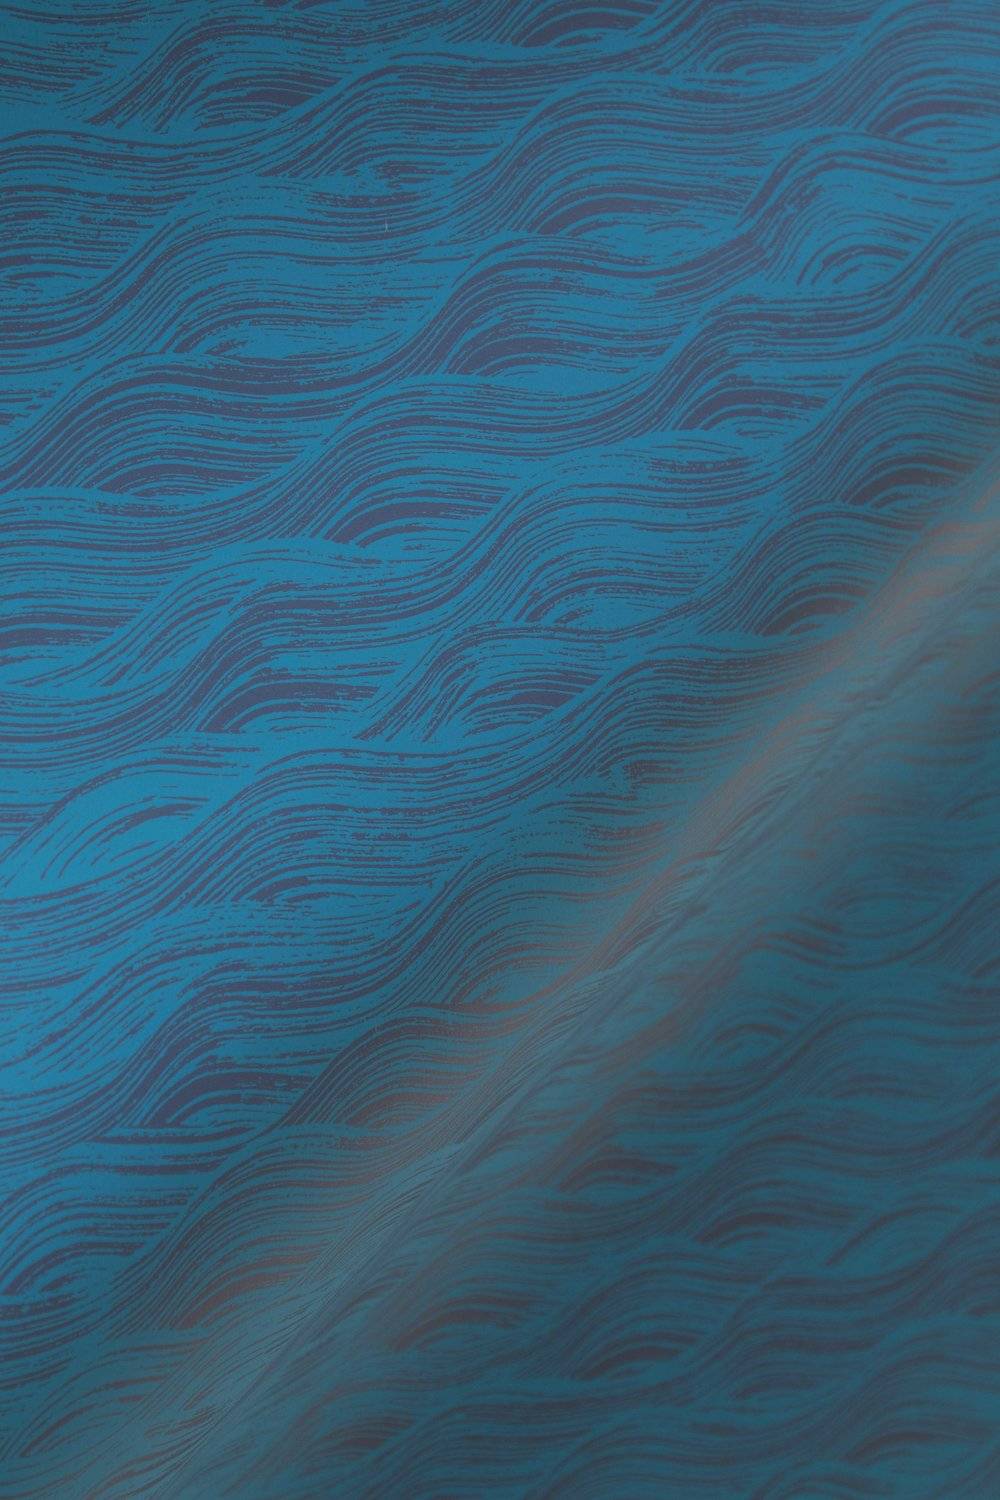 Painted Wave in Azure, SL160-01